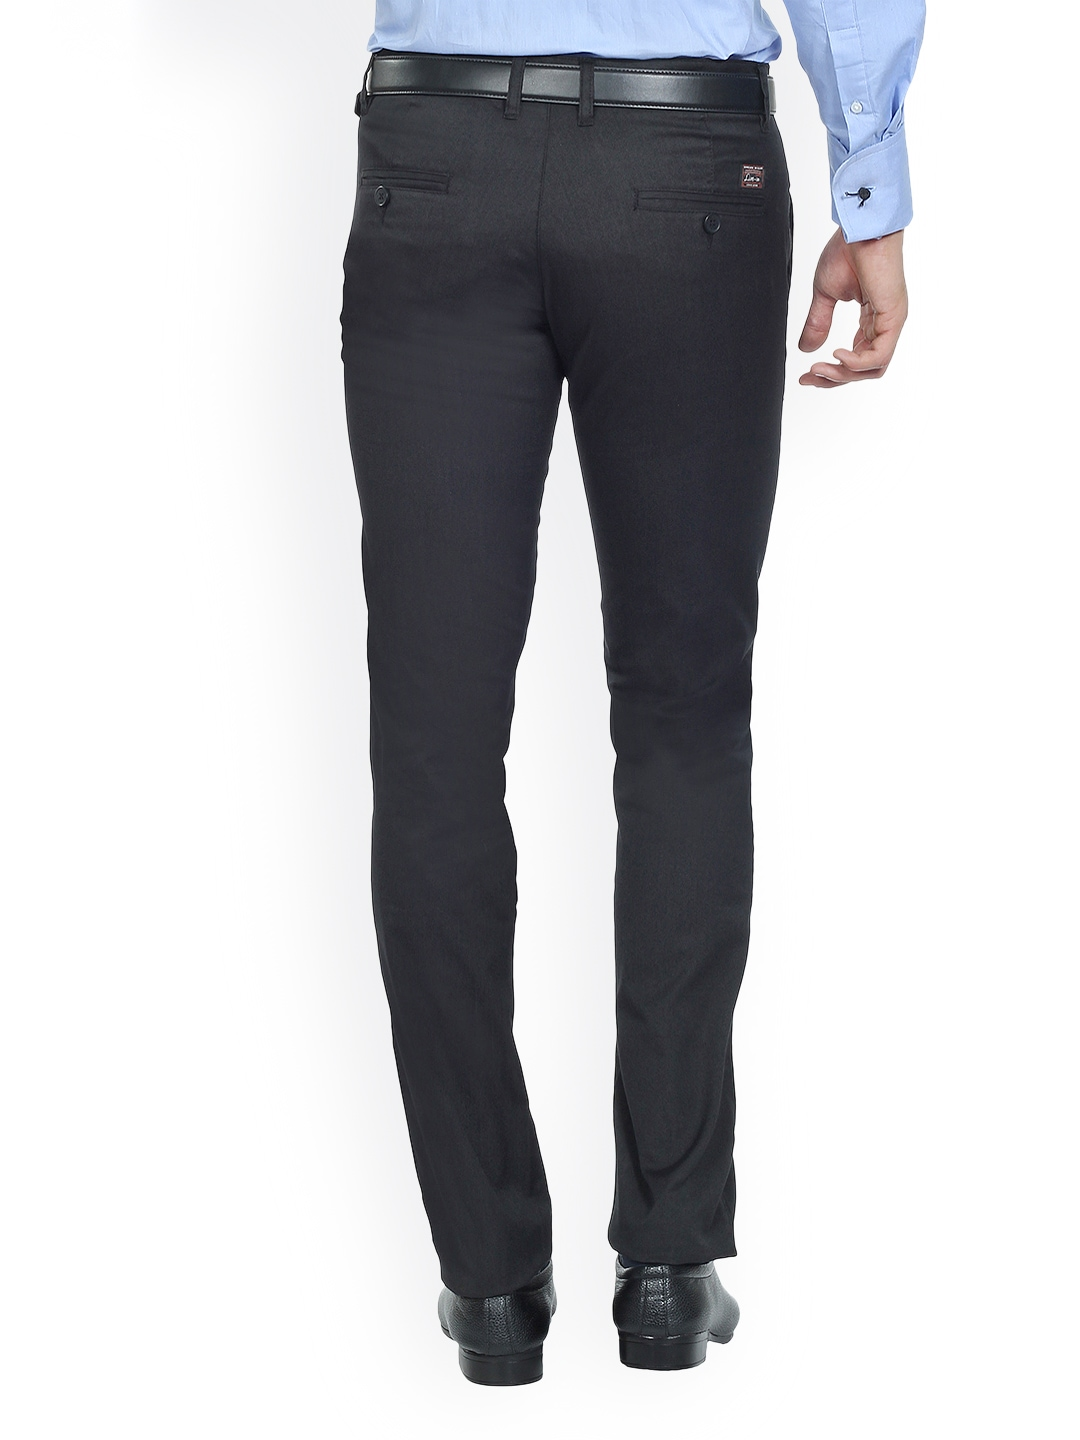 Levi's Jeans- Buy Levi's Women Jeans online in India. Finest collection of Levi's Jeans that too at upto 70% off only at fbcpmhoe.cf All India FREE Shipping. Cash on Delivery available.